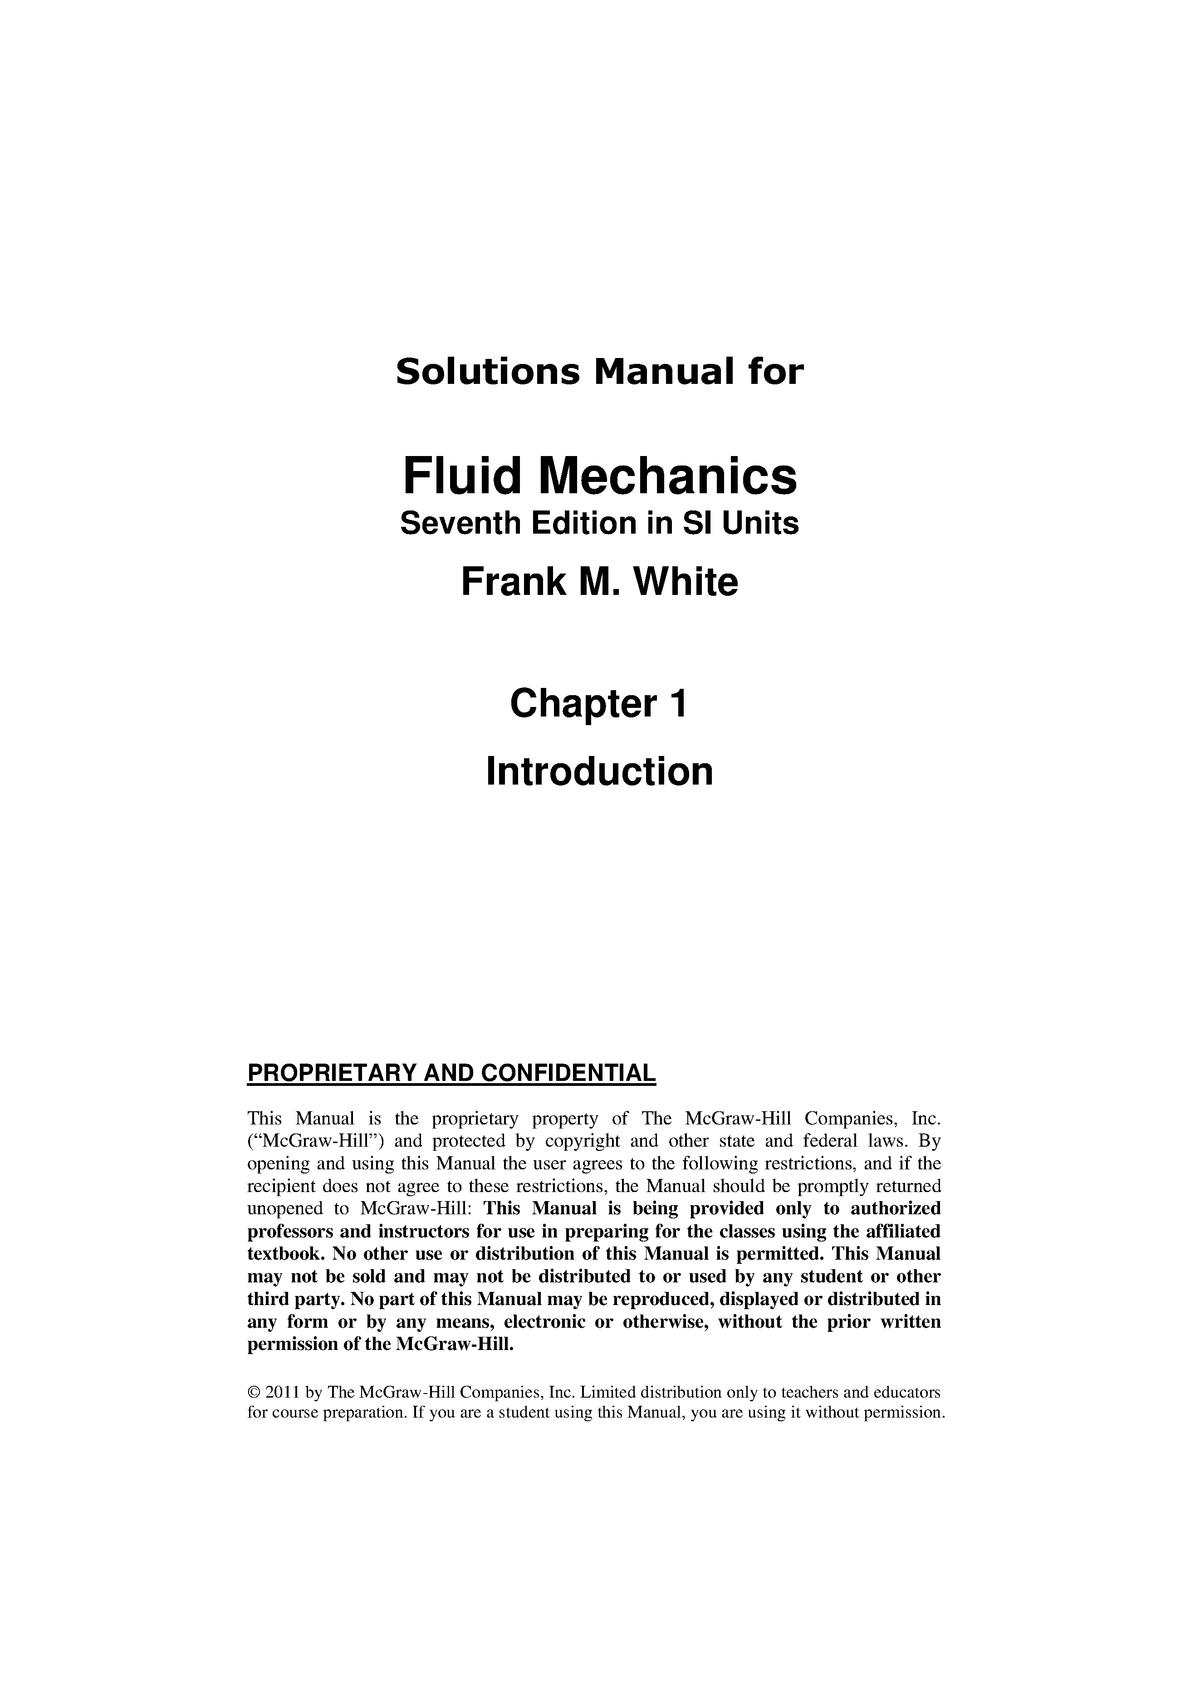 Book-solutions-fluid-mechanics - StuDocu